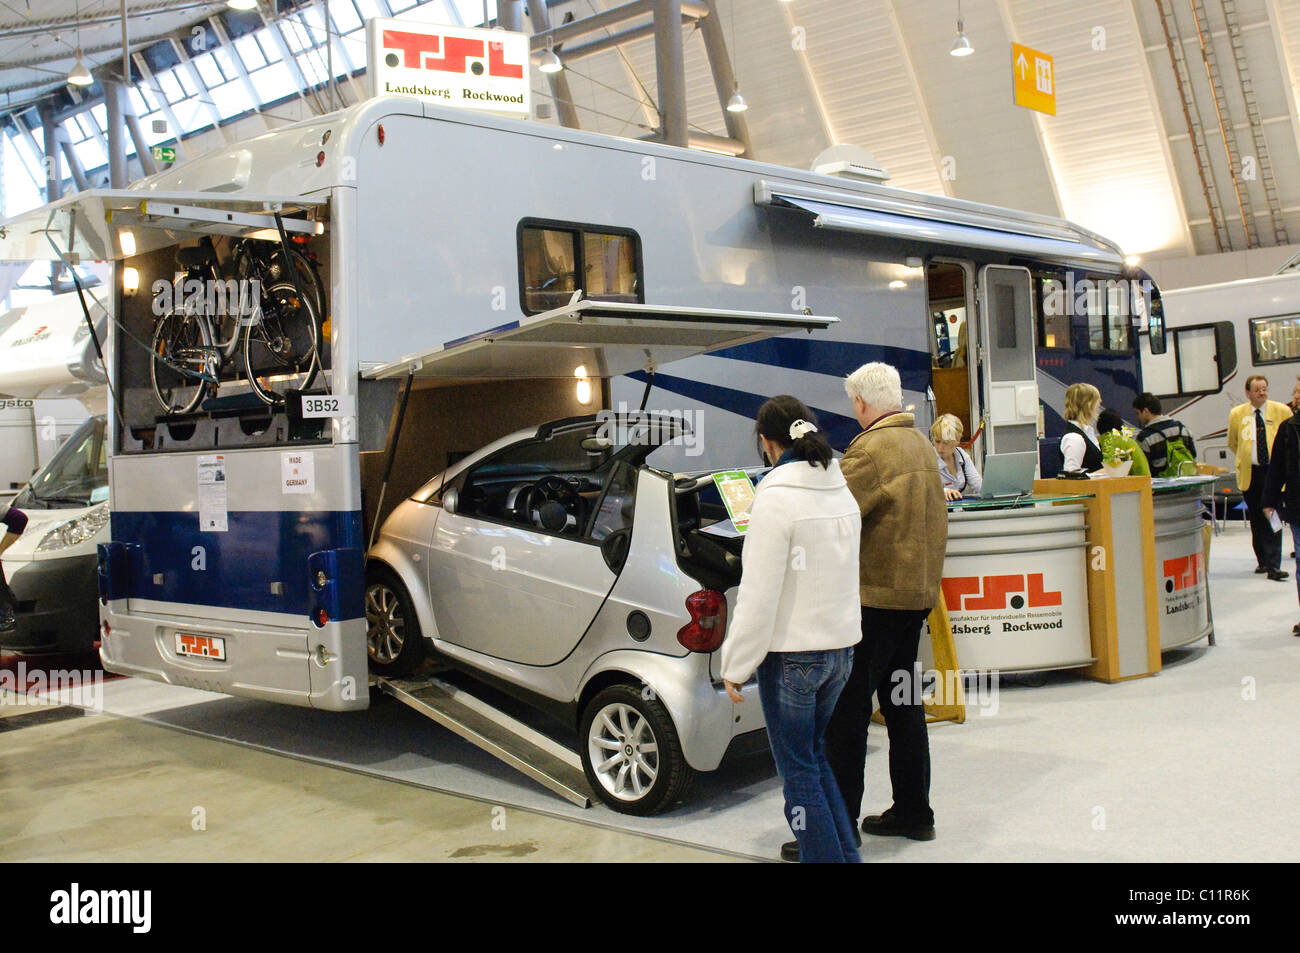 American Wohnzimmer Giant Luxury Motor Home By Tsl A Smart Car Can Park